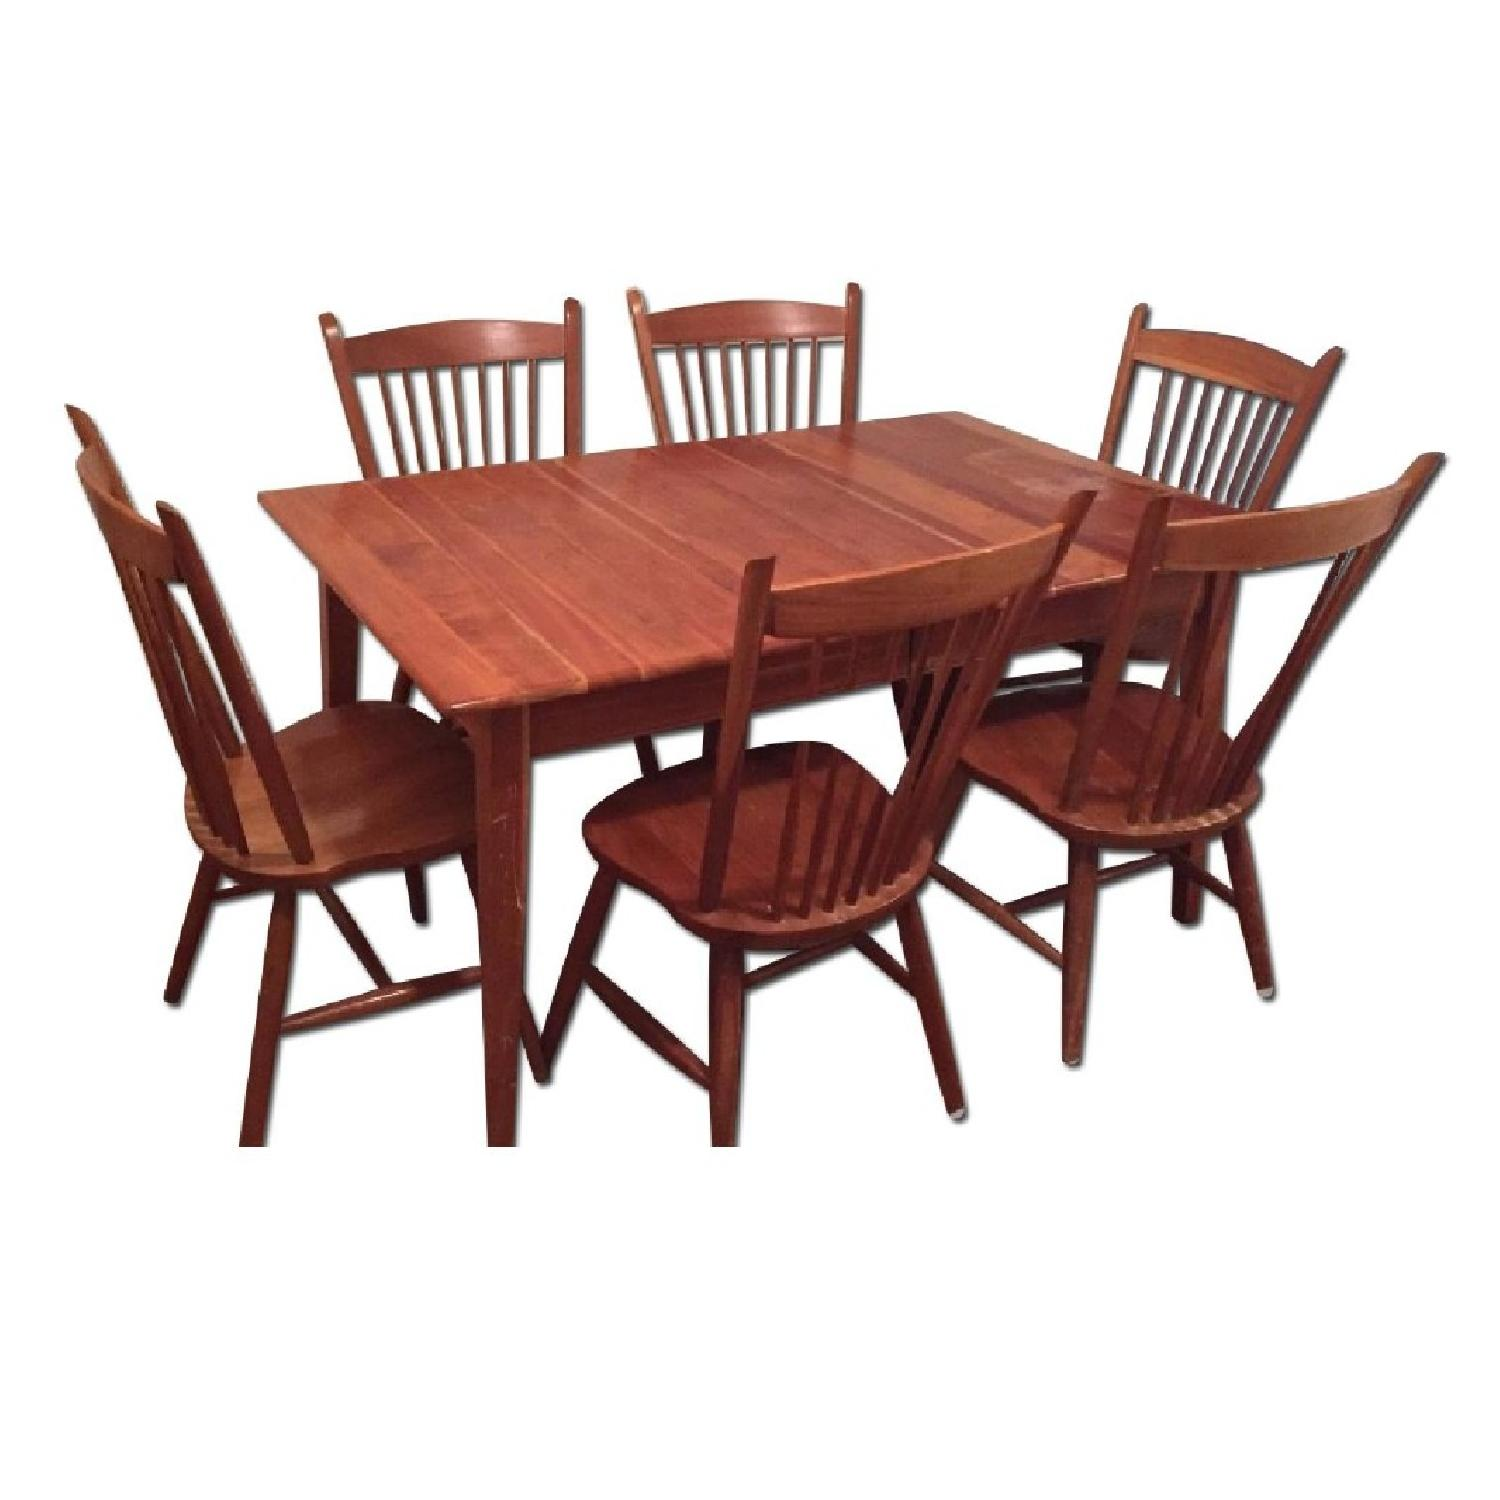 Expandable Cherry Dining Table w/ 6 Chairs